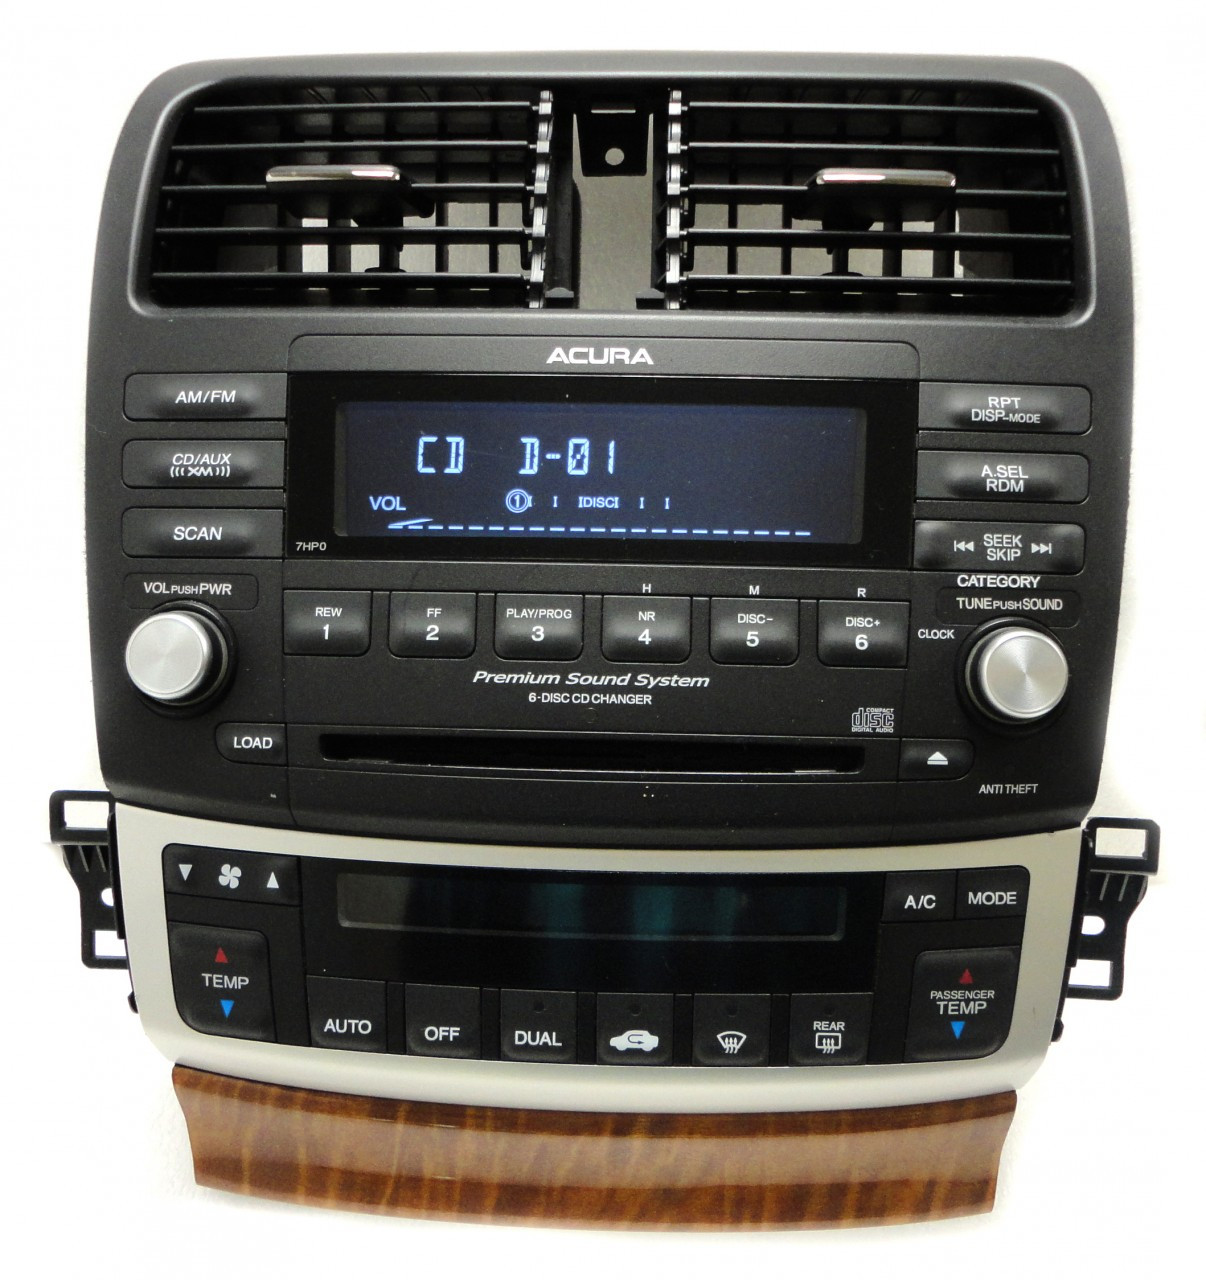 7HP0 04 05 06 07 08 Acura TSX XM Stereo 6 CD Player